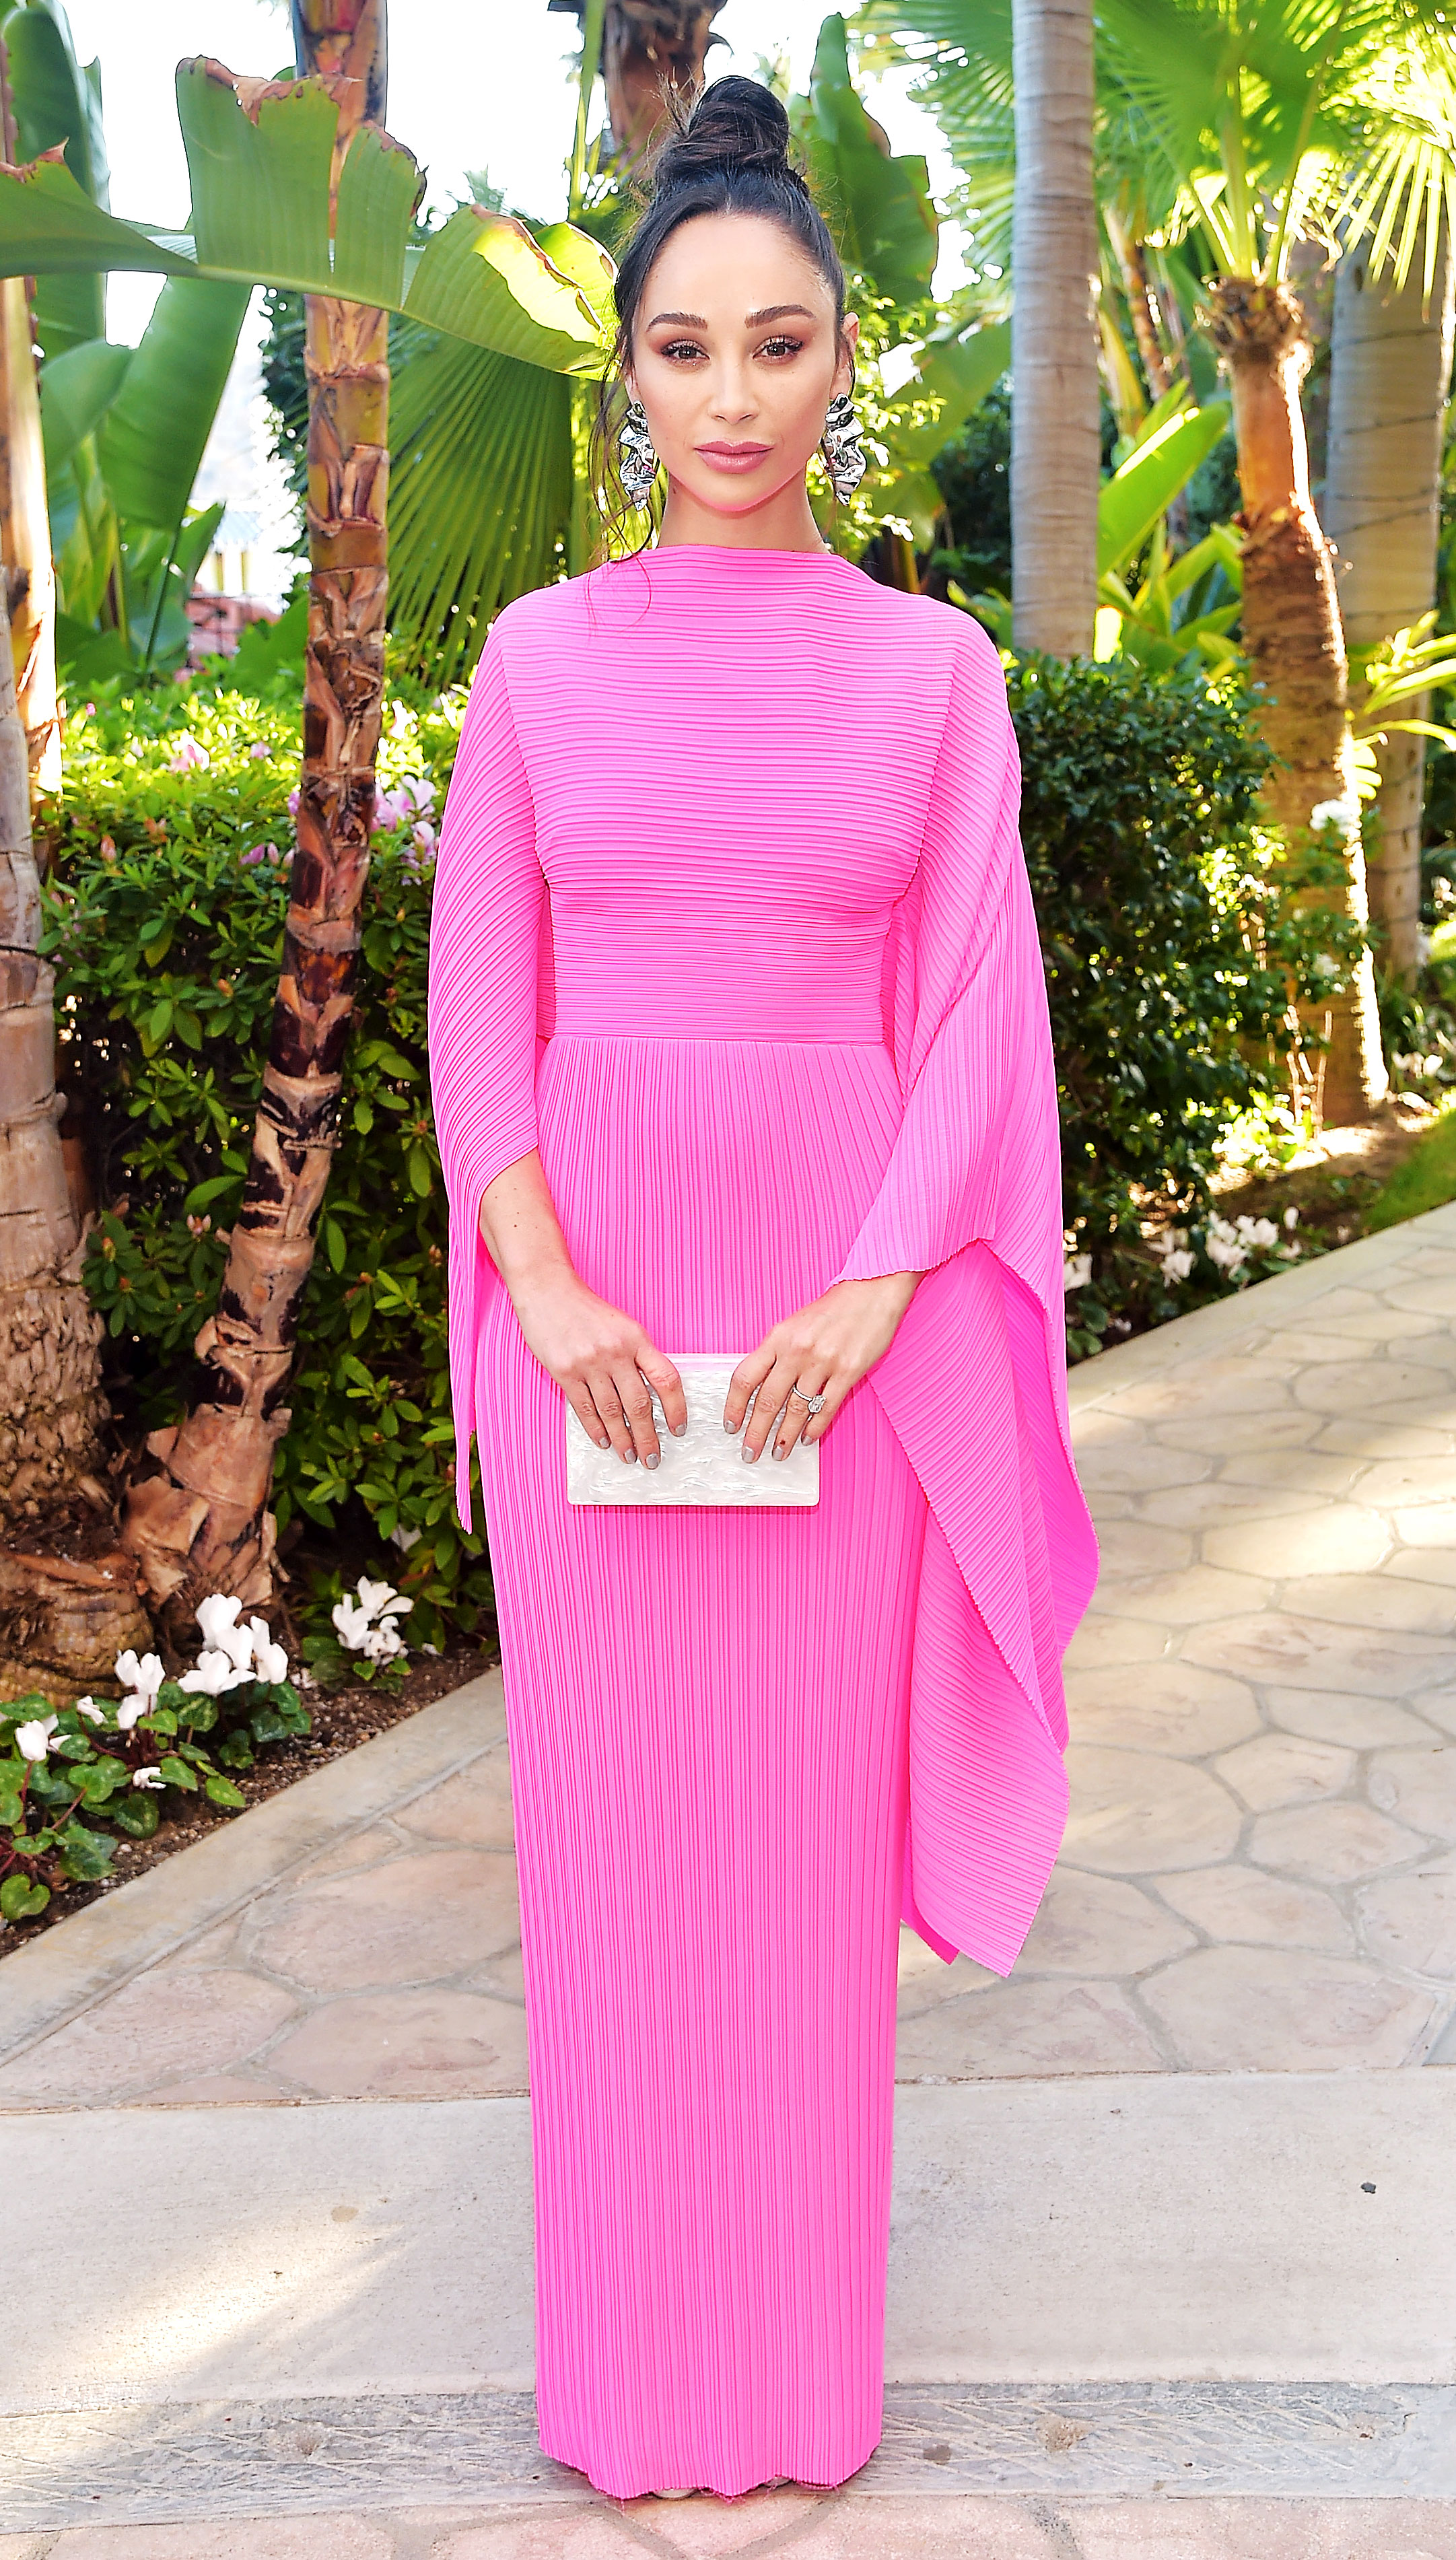 Cara Santana: I'm 'Nowhere' in My Wedding Planning With Fiance Jesse Metcalfe - Cara Santana attends The Daily Front Row Fashion LA Awards 2019 on March 17, 2019 in Los Angeles, California.